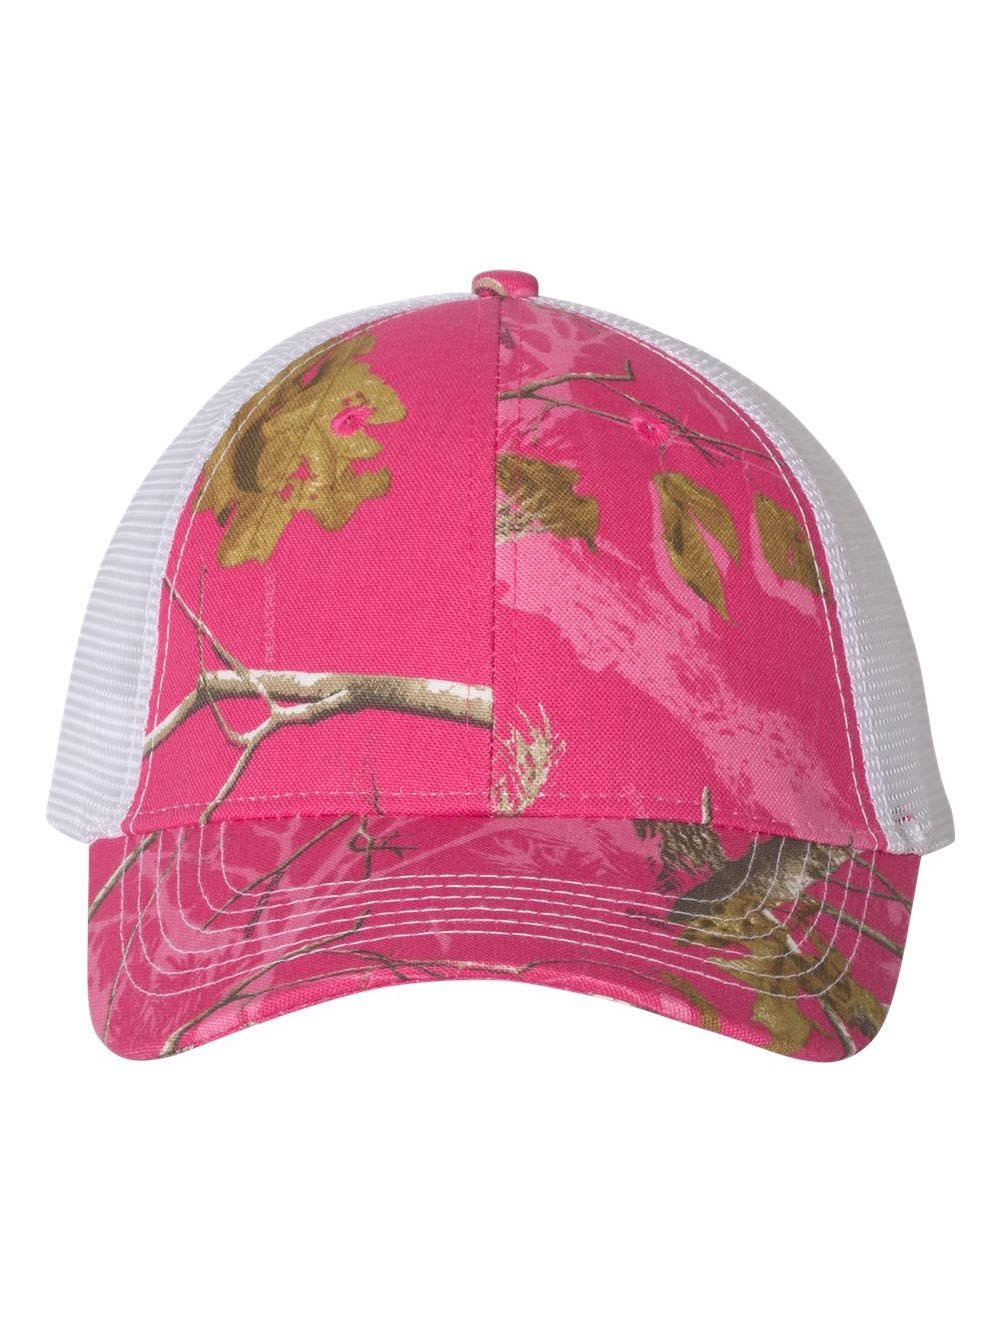 Ikat HAT メンズ B077Y7GHT5 One Size All Purpose Hot Pink/ White All Purpose Hot Pink/ White One Size